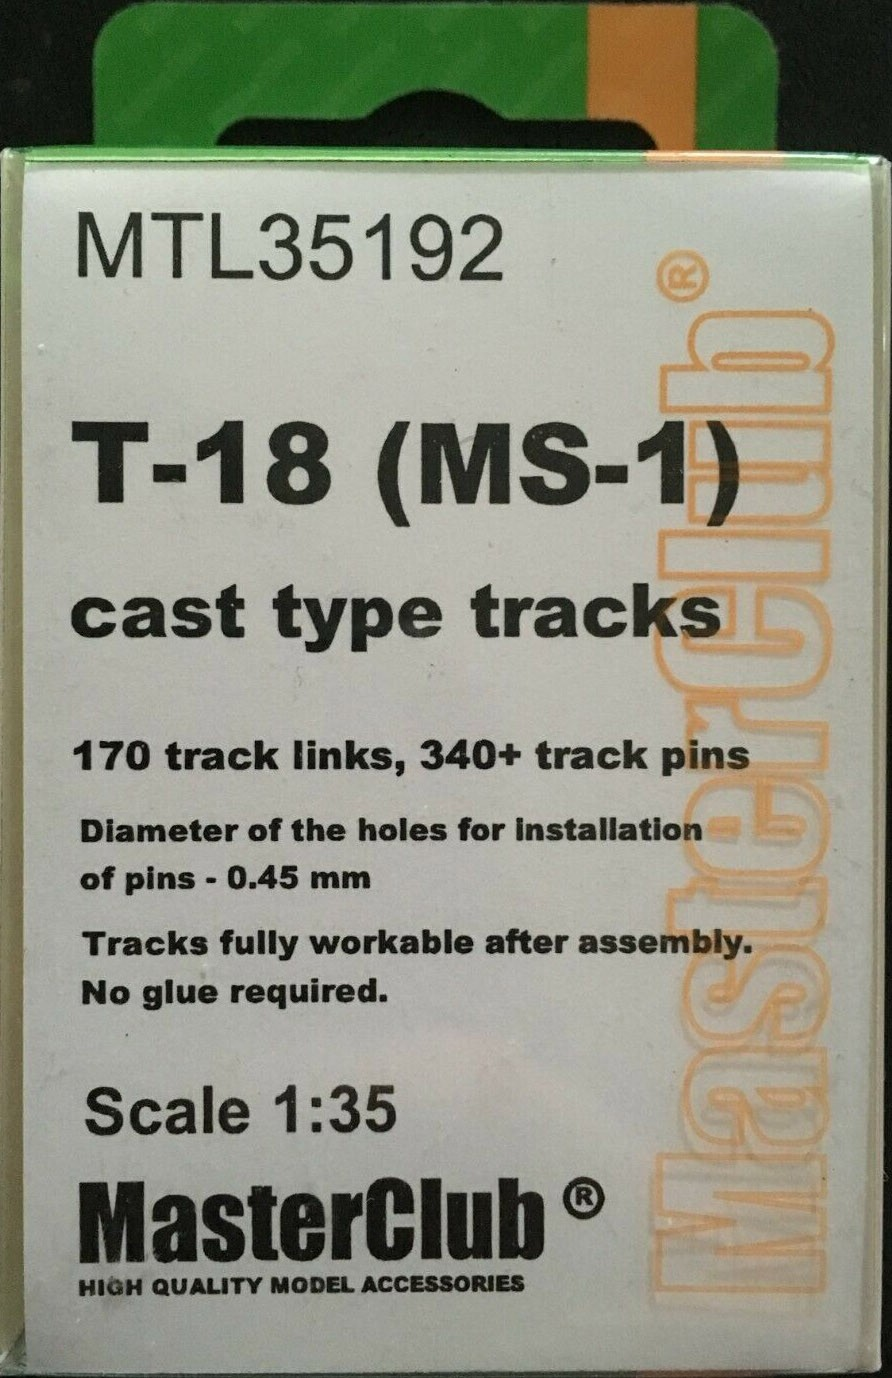 MTL-35192 T-18 (MS-1) tracks Image